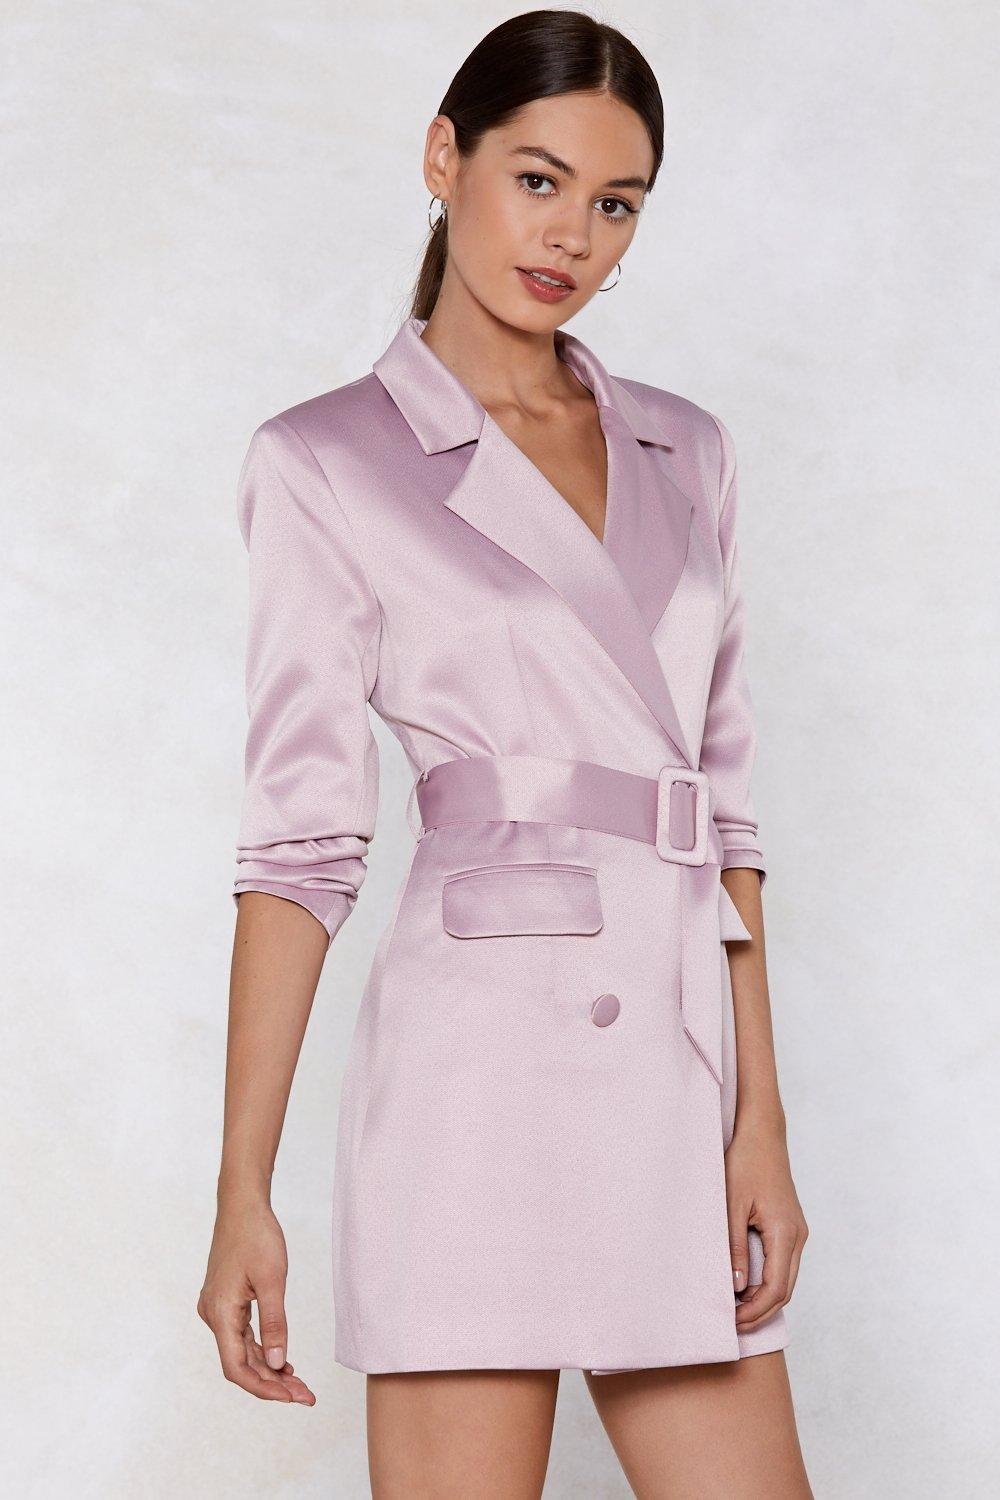 e76594d807f1 Powers That Be Blazer Dress | Shop Clothes at Nasty Gal!